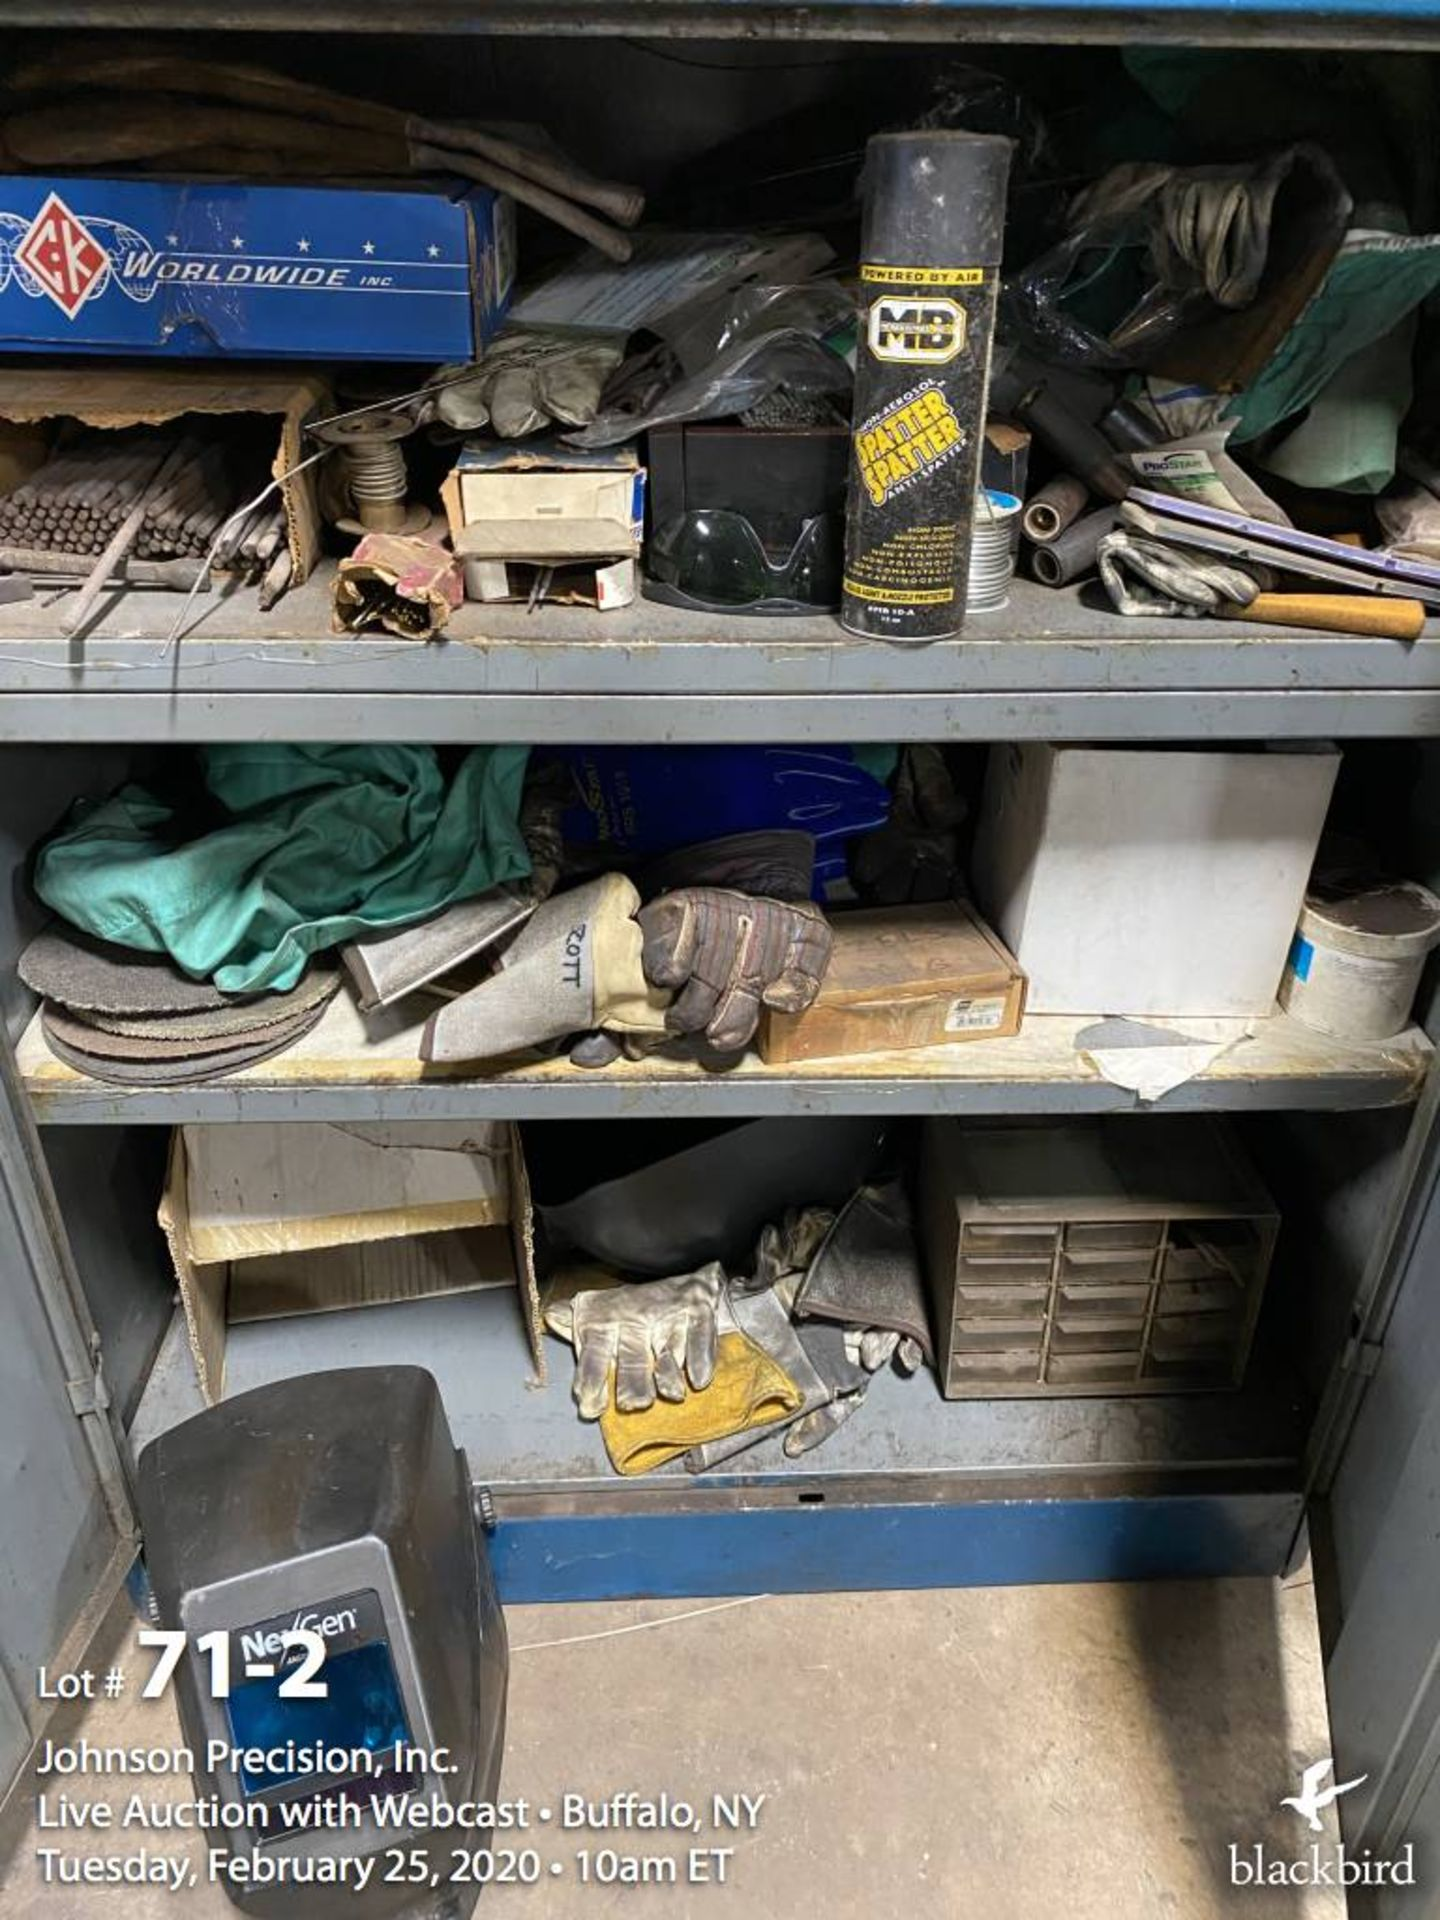 Lot 71 - Cabinet with welding items